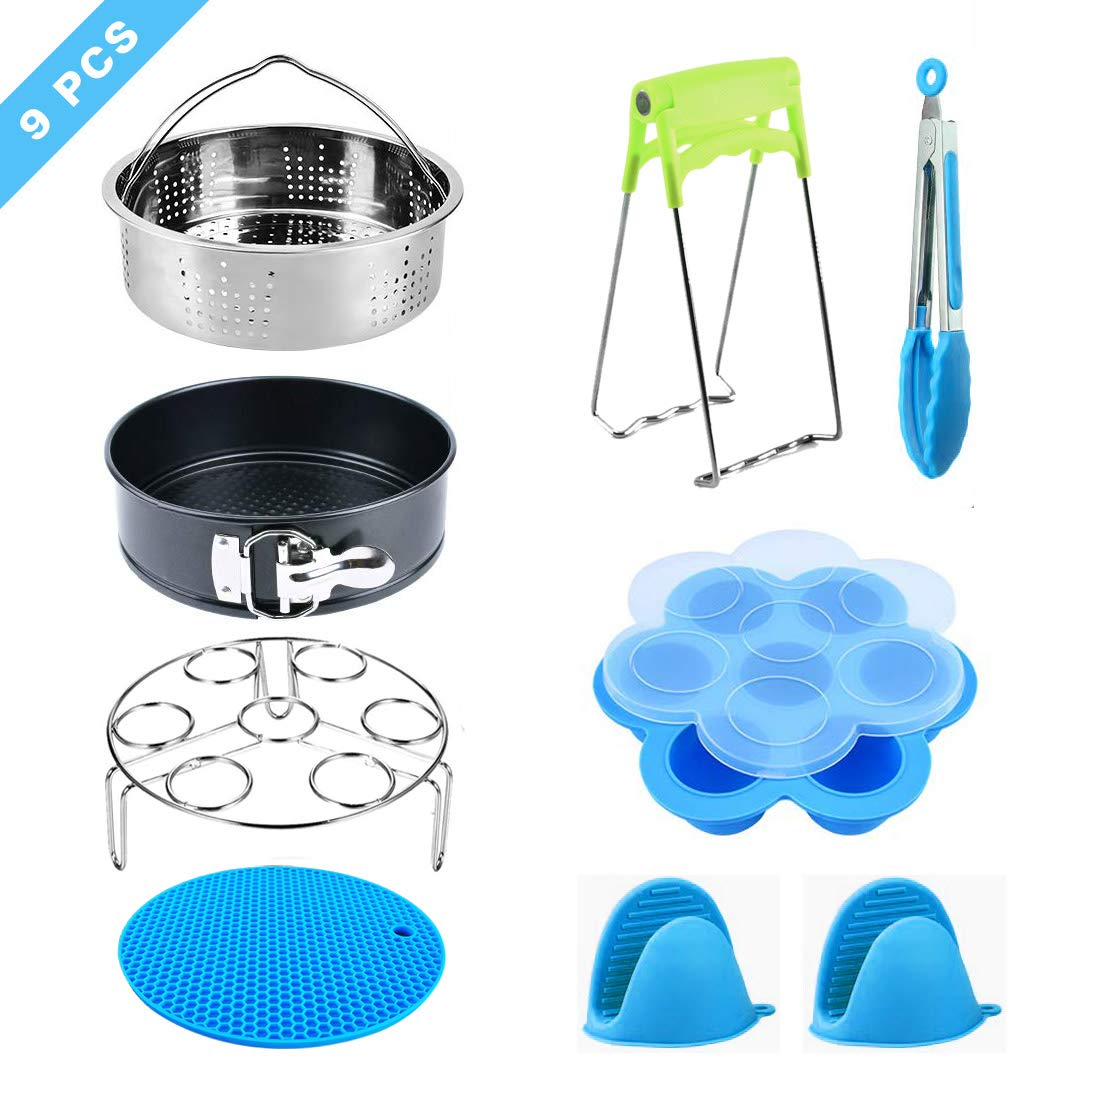 Accessories Set Compatible with Instant Pot 5,6,8 QT Pressure Cook with Steamer Basket,Egg Steamer Rack,Non-stick Springform Pan,Egg Bites Molds,Kitchen Tongs, Pinch Mitts and Potholder Mat (8 Pcs)